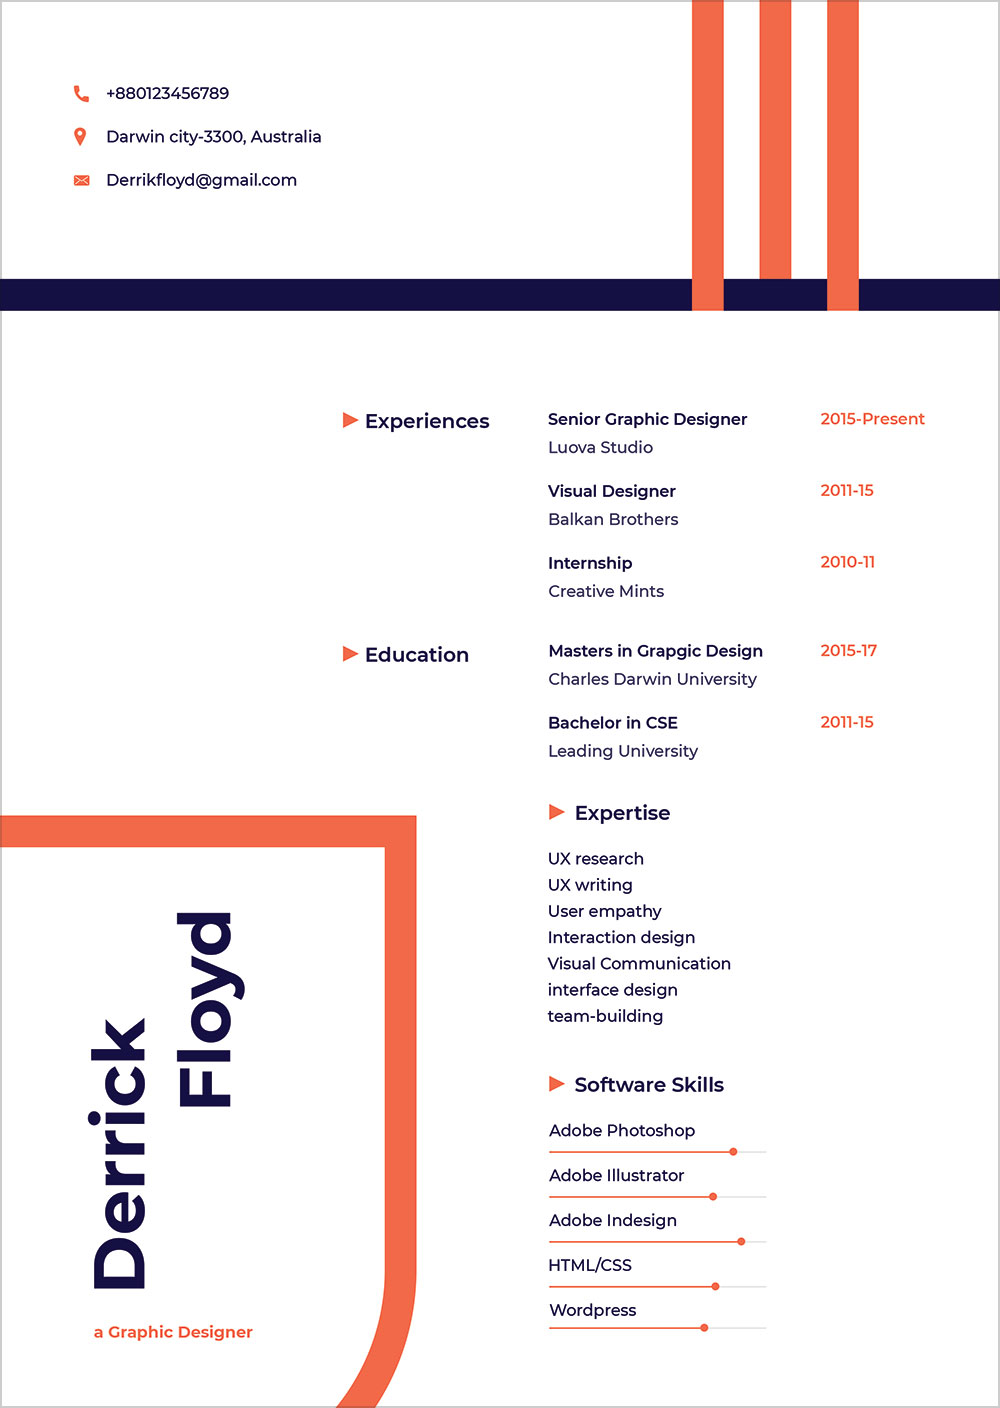 Free-Professional-CV-Resume-Template-&-Cover-Letter-in-Word,-PSD,-Sketch-&-XD-2